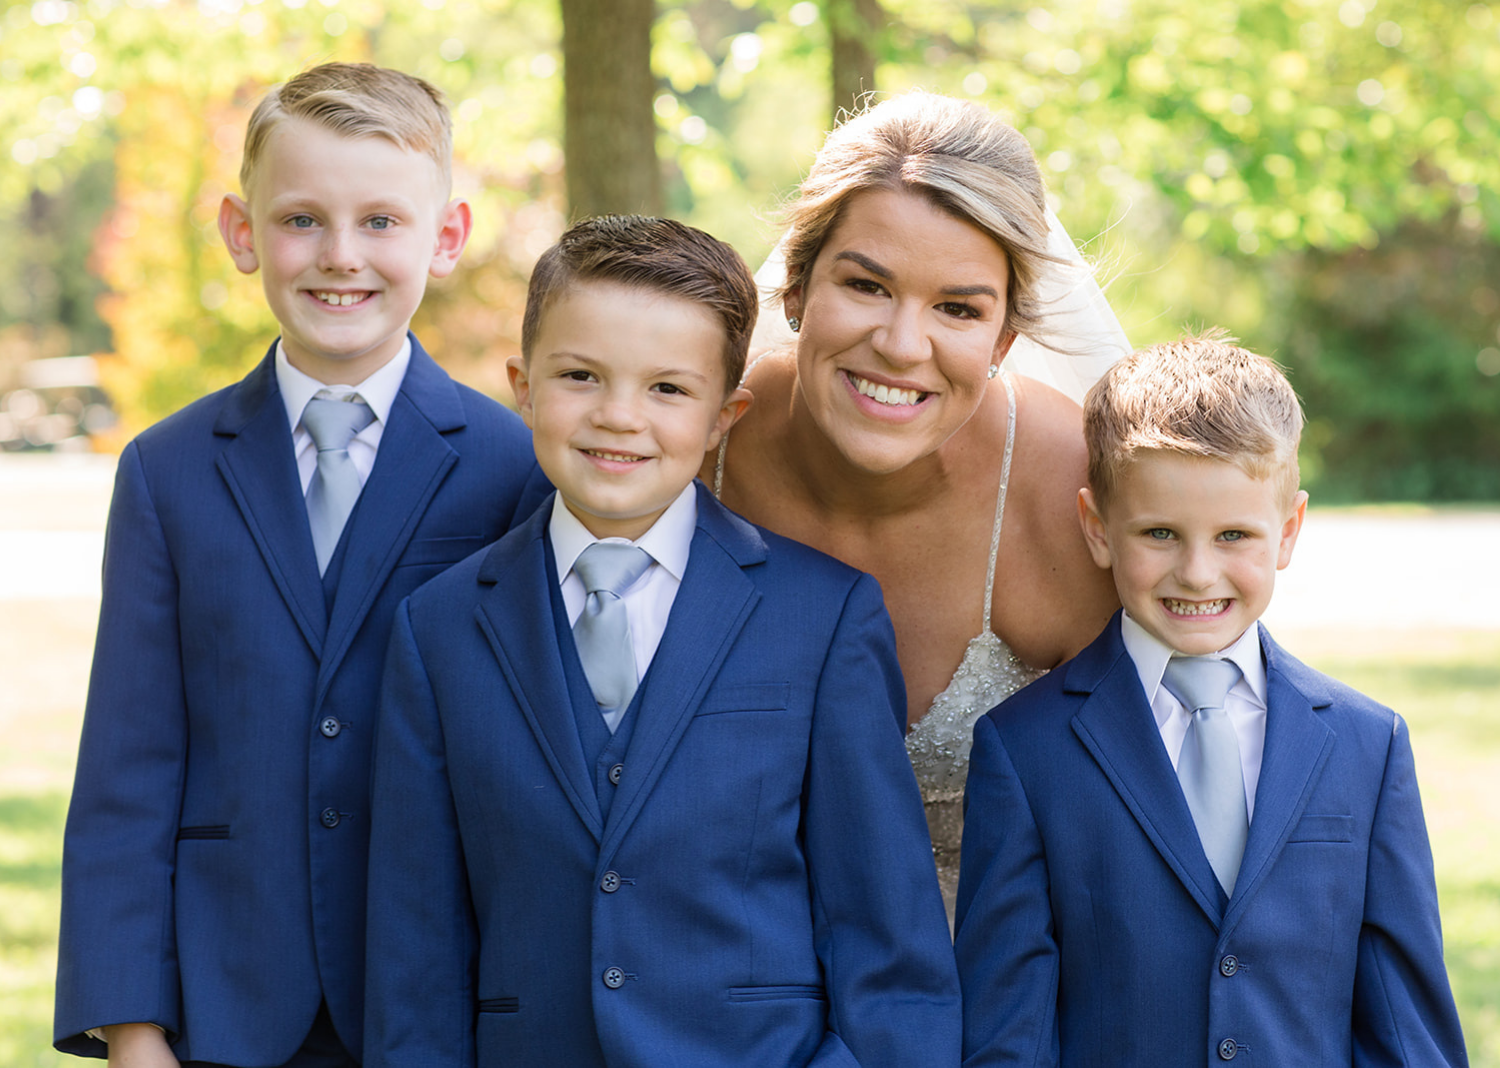 bride with her sons before the wedding ceremony